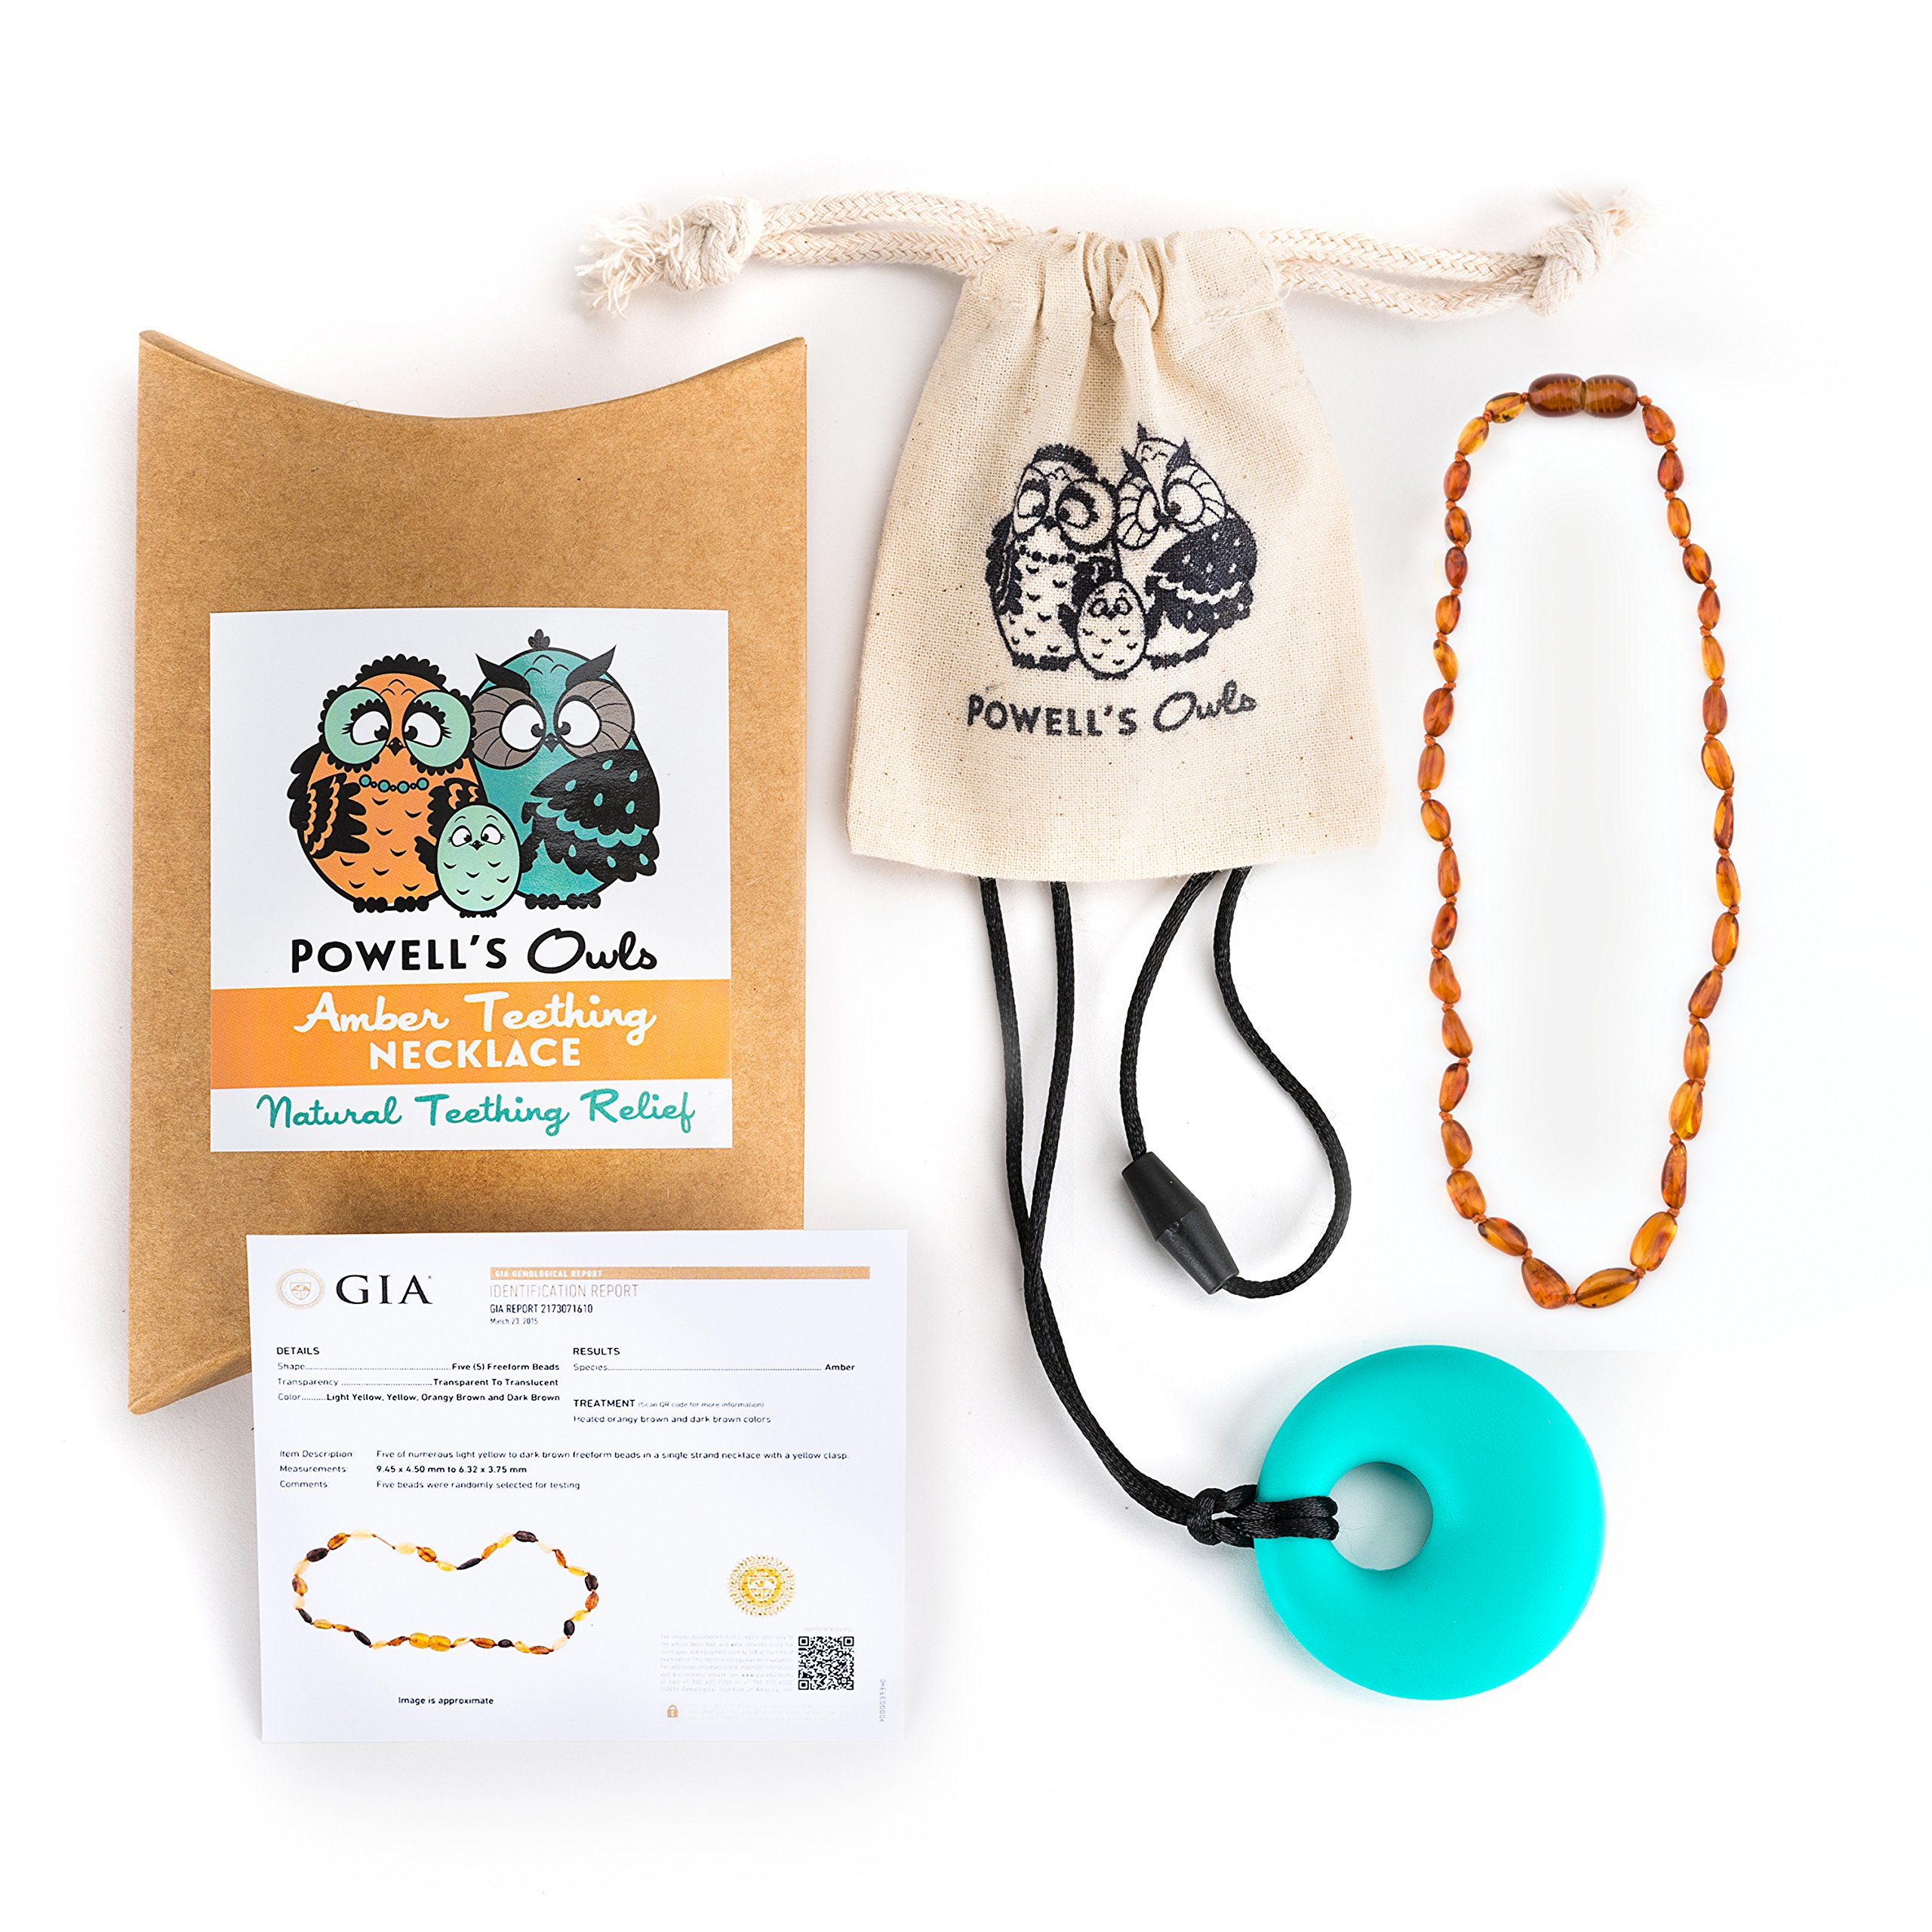 "Baltic Amber Teething Necklace Gift Set + FREE Silicone Teething Pendant ($15 Value) Handcrafted, 100% USA Lab-Tested Authentic Amber - Natural, Soothing Teething Pain Relief (Unisex - Cognac - 12.5"")"